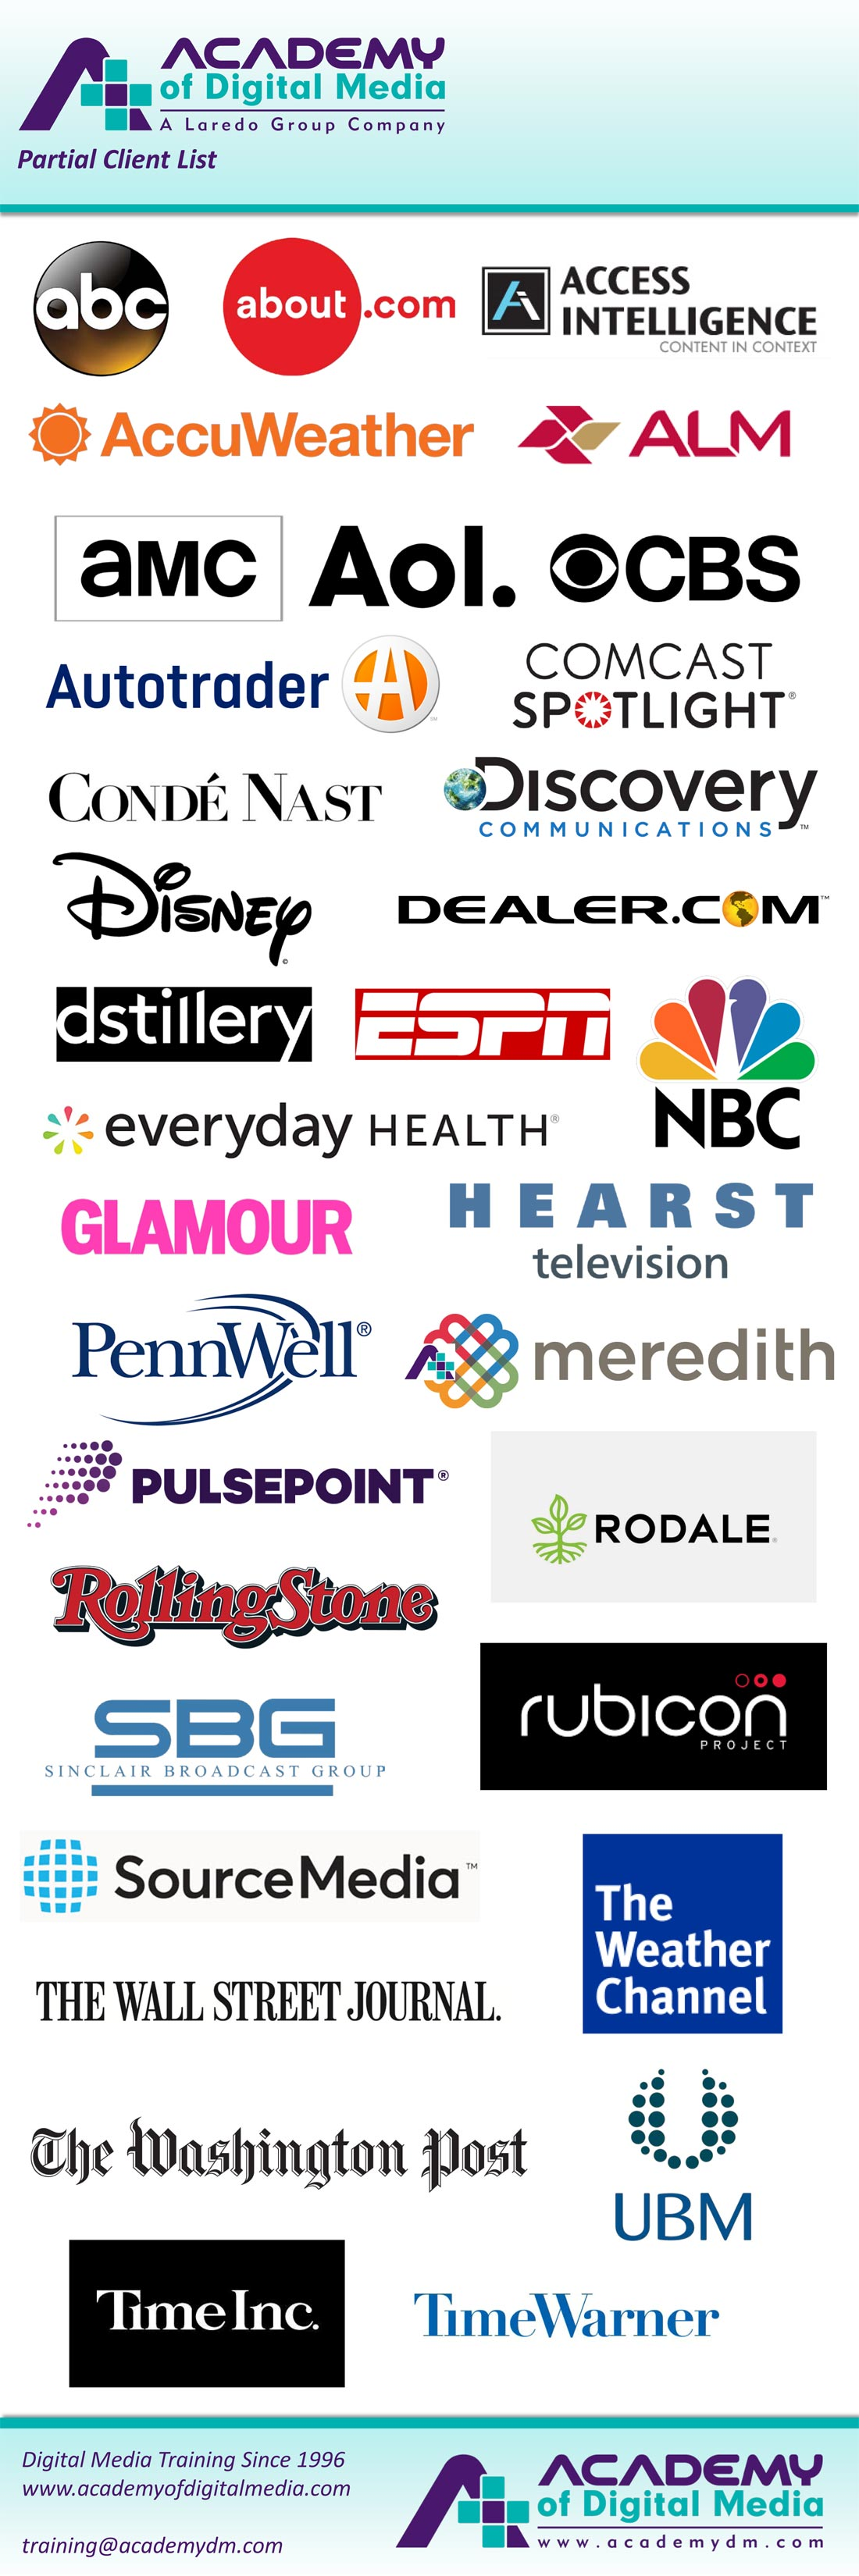 Academy of Digital Media partial client list